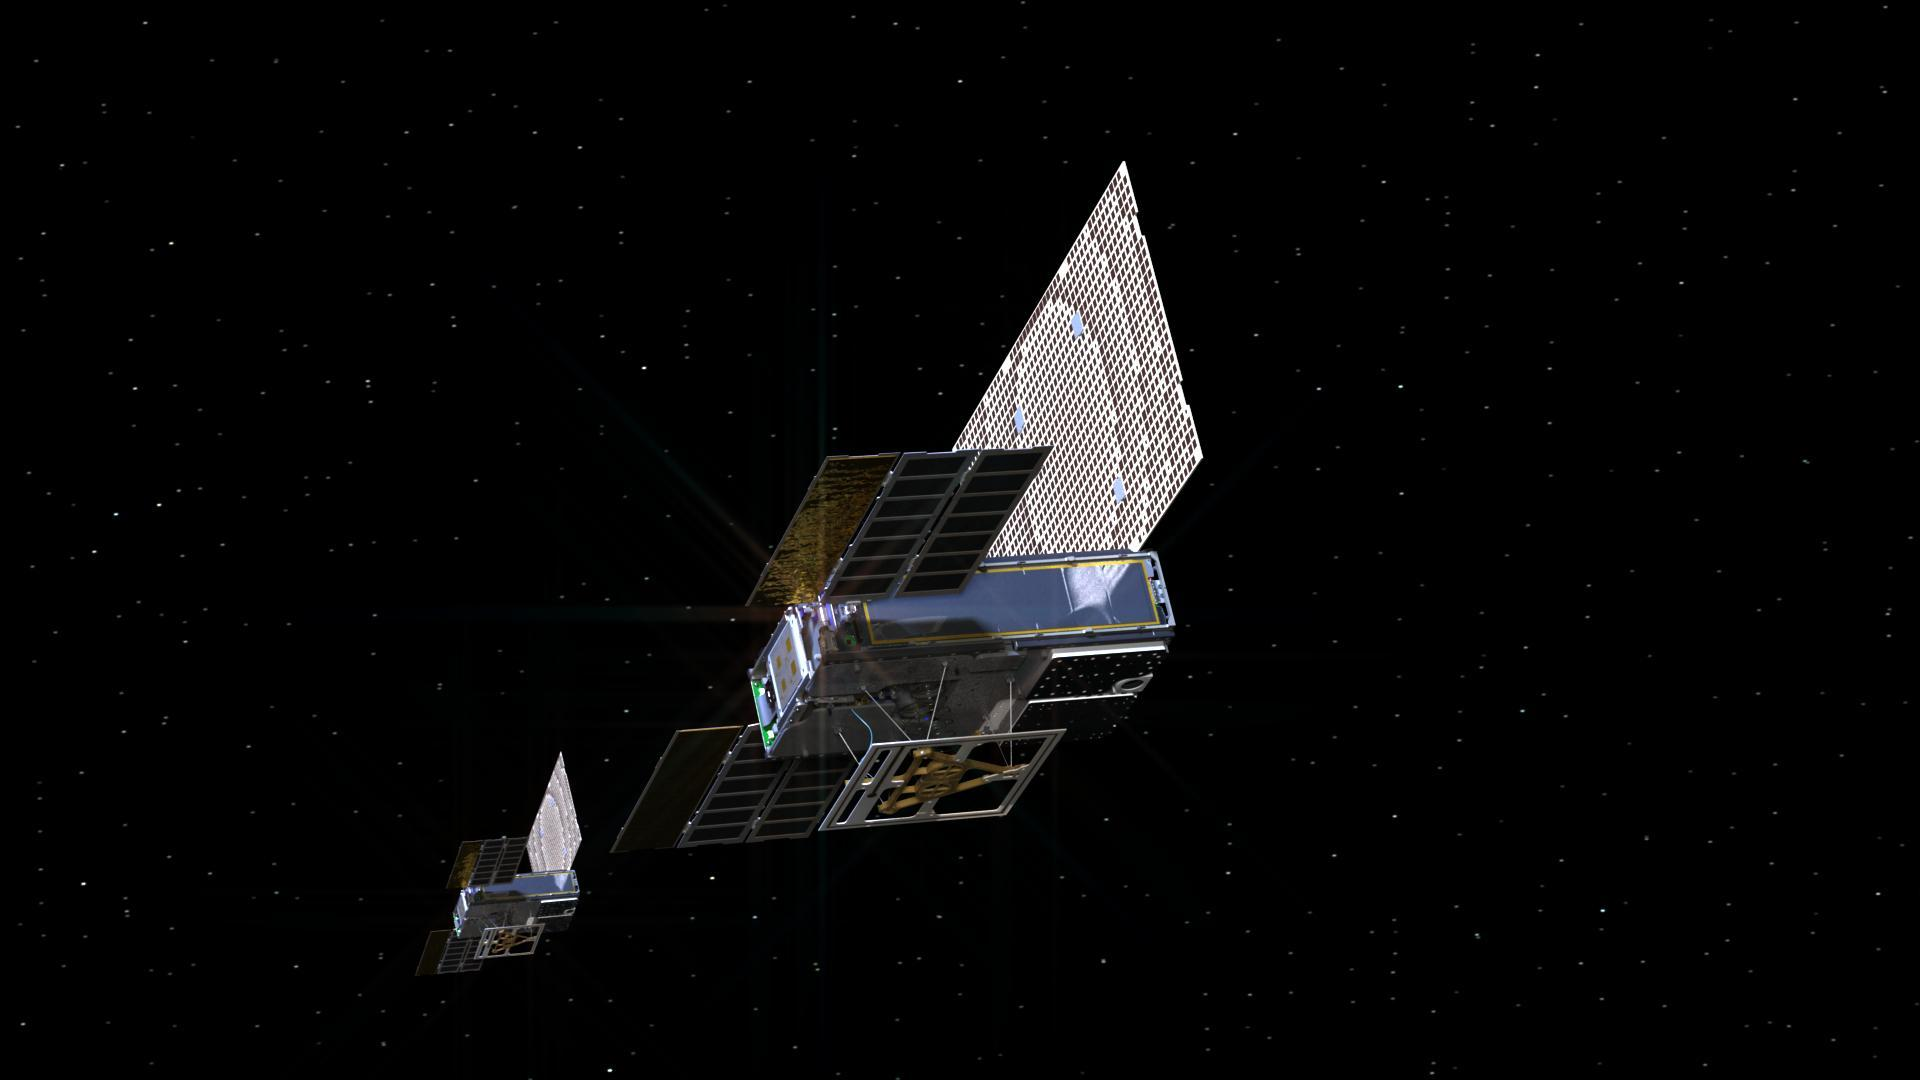 Twin small spacecraft in space.